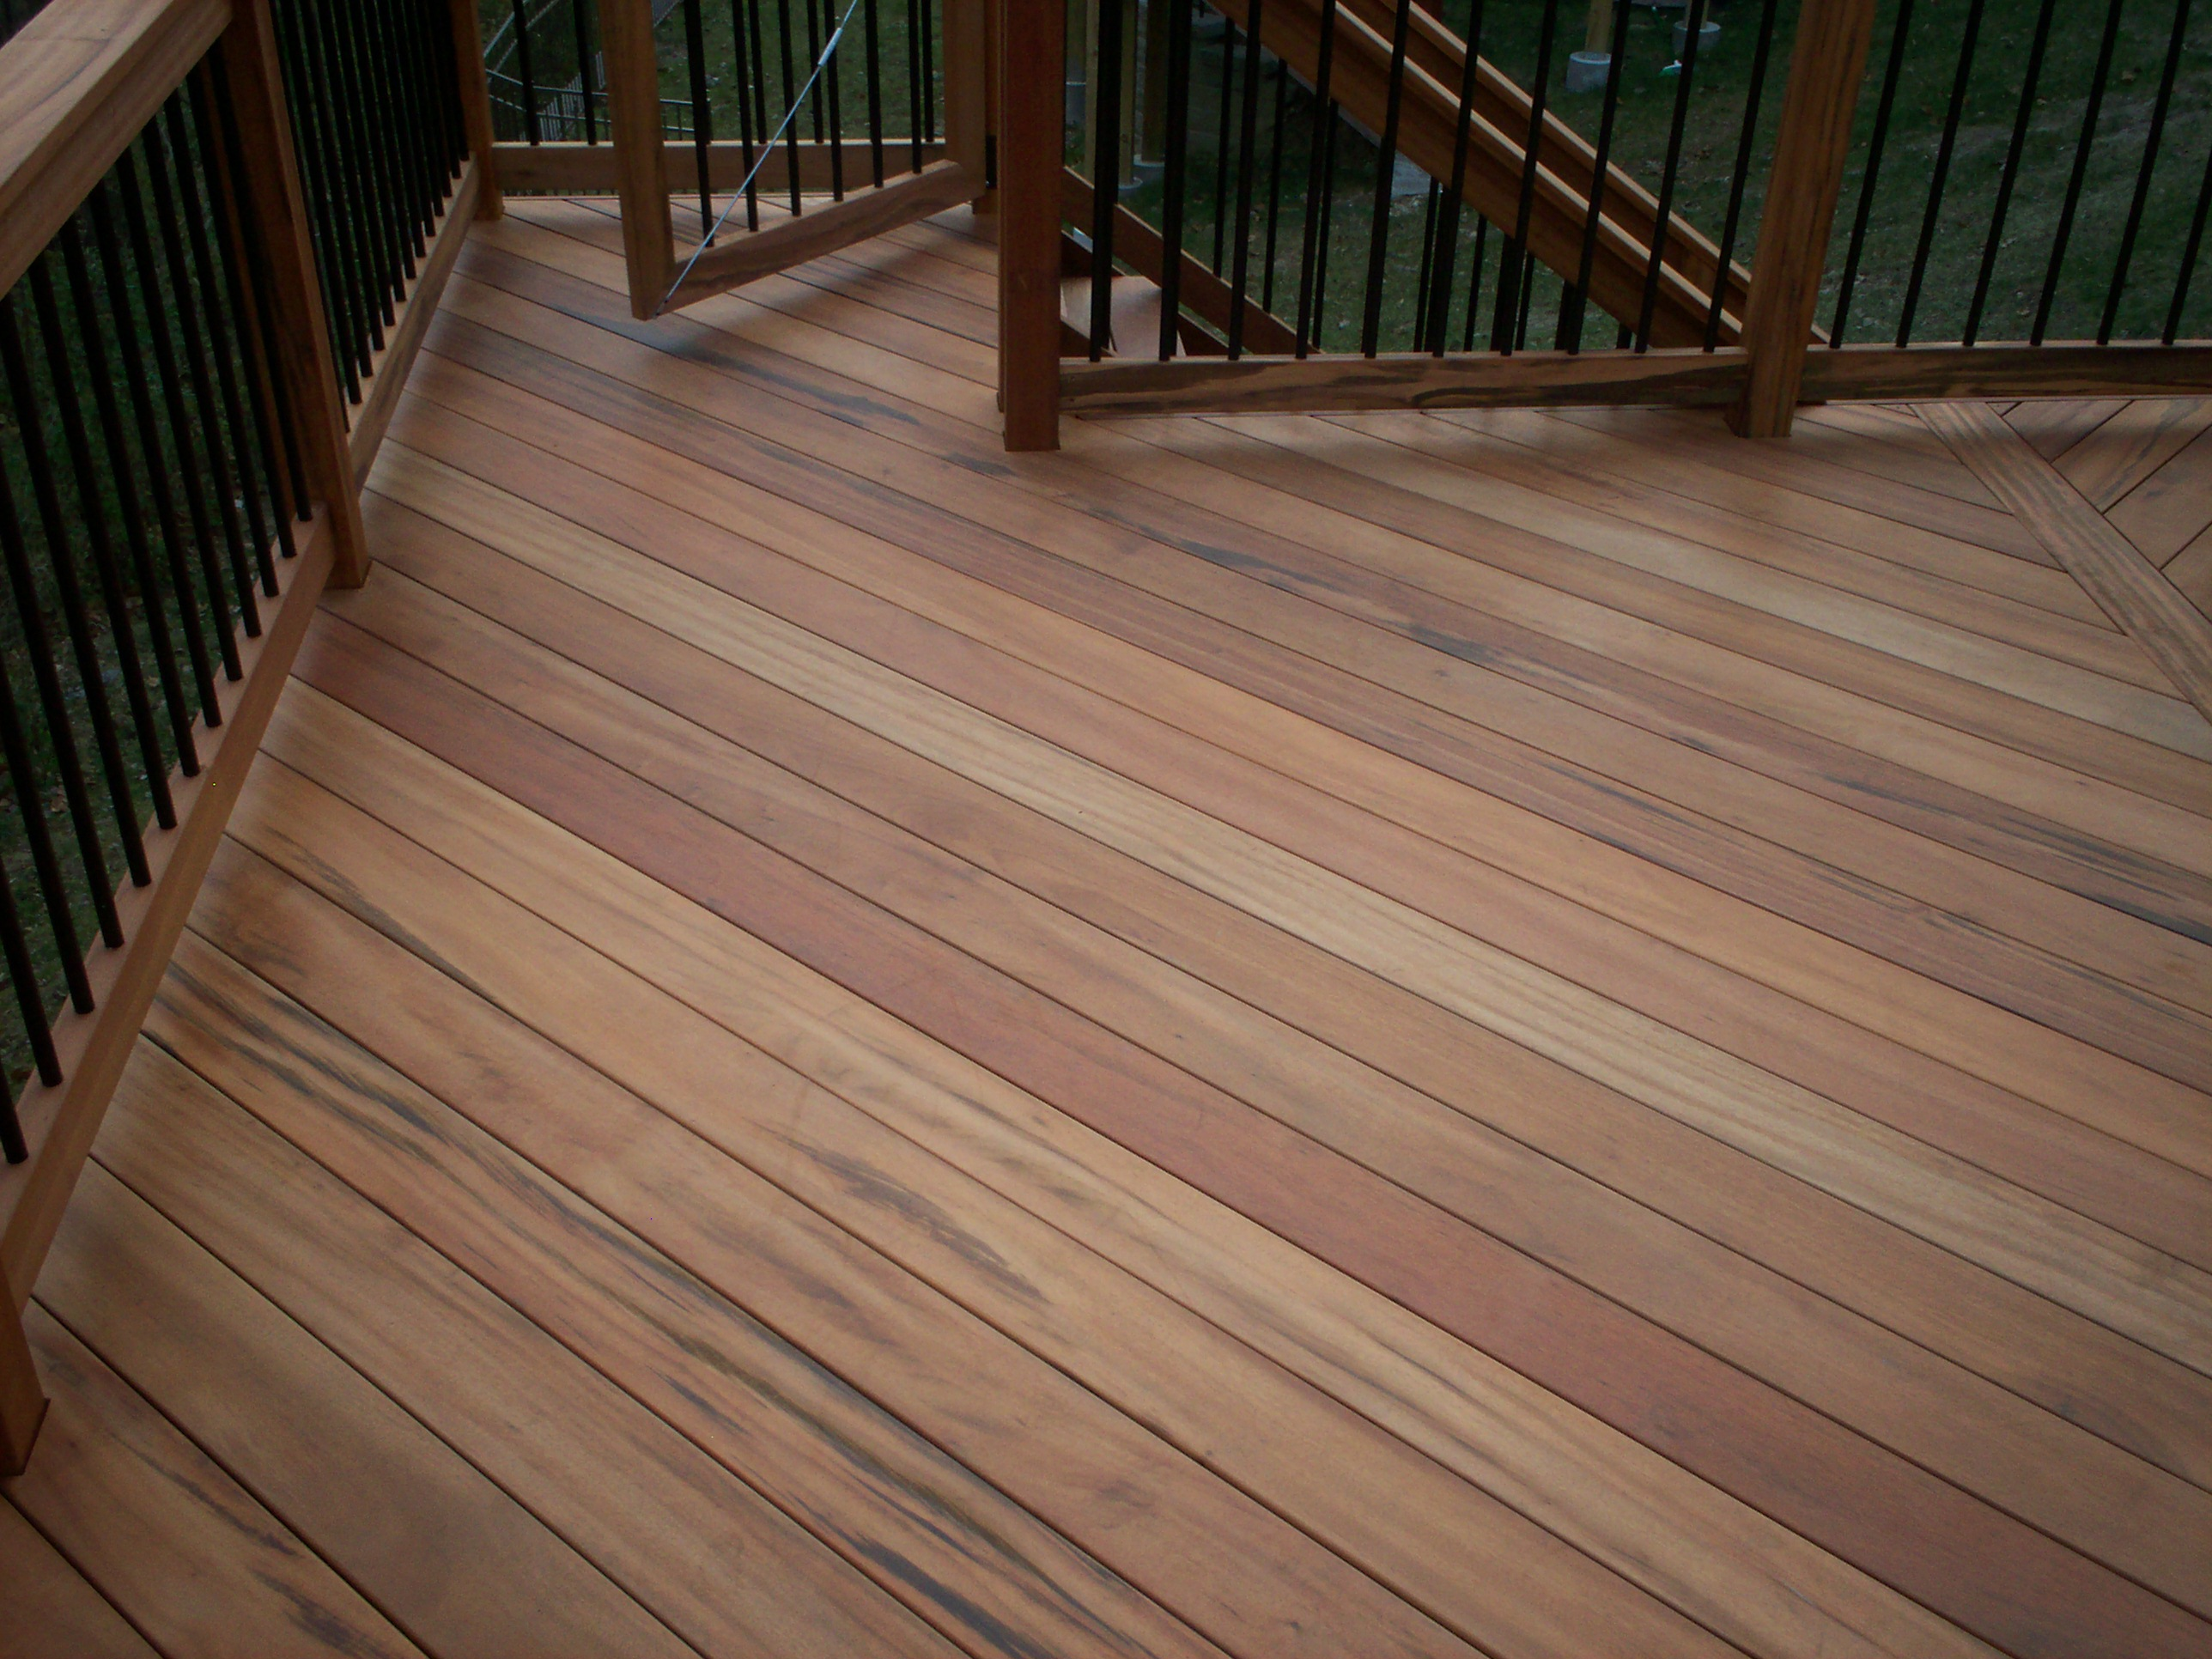 2015 outdoor living trends year in preview by archadeck for Hardwood outdoor decking